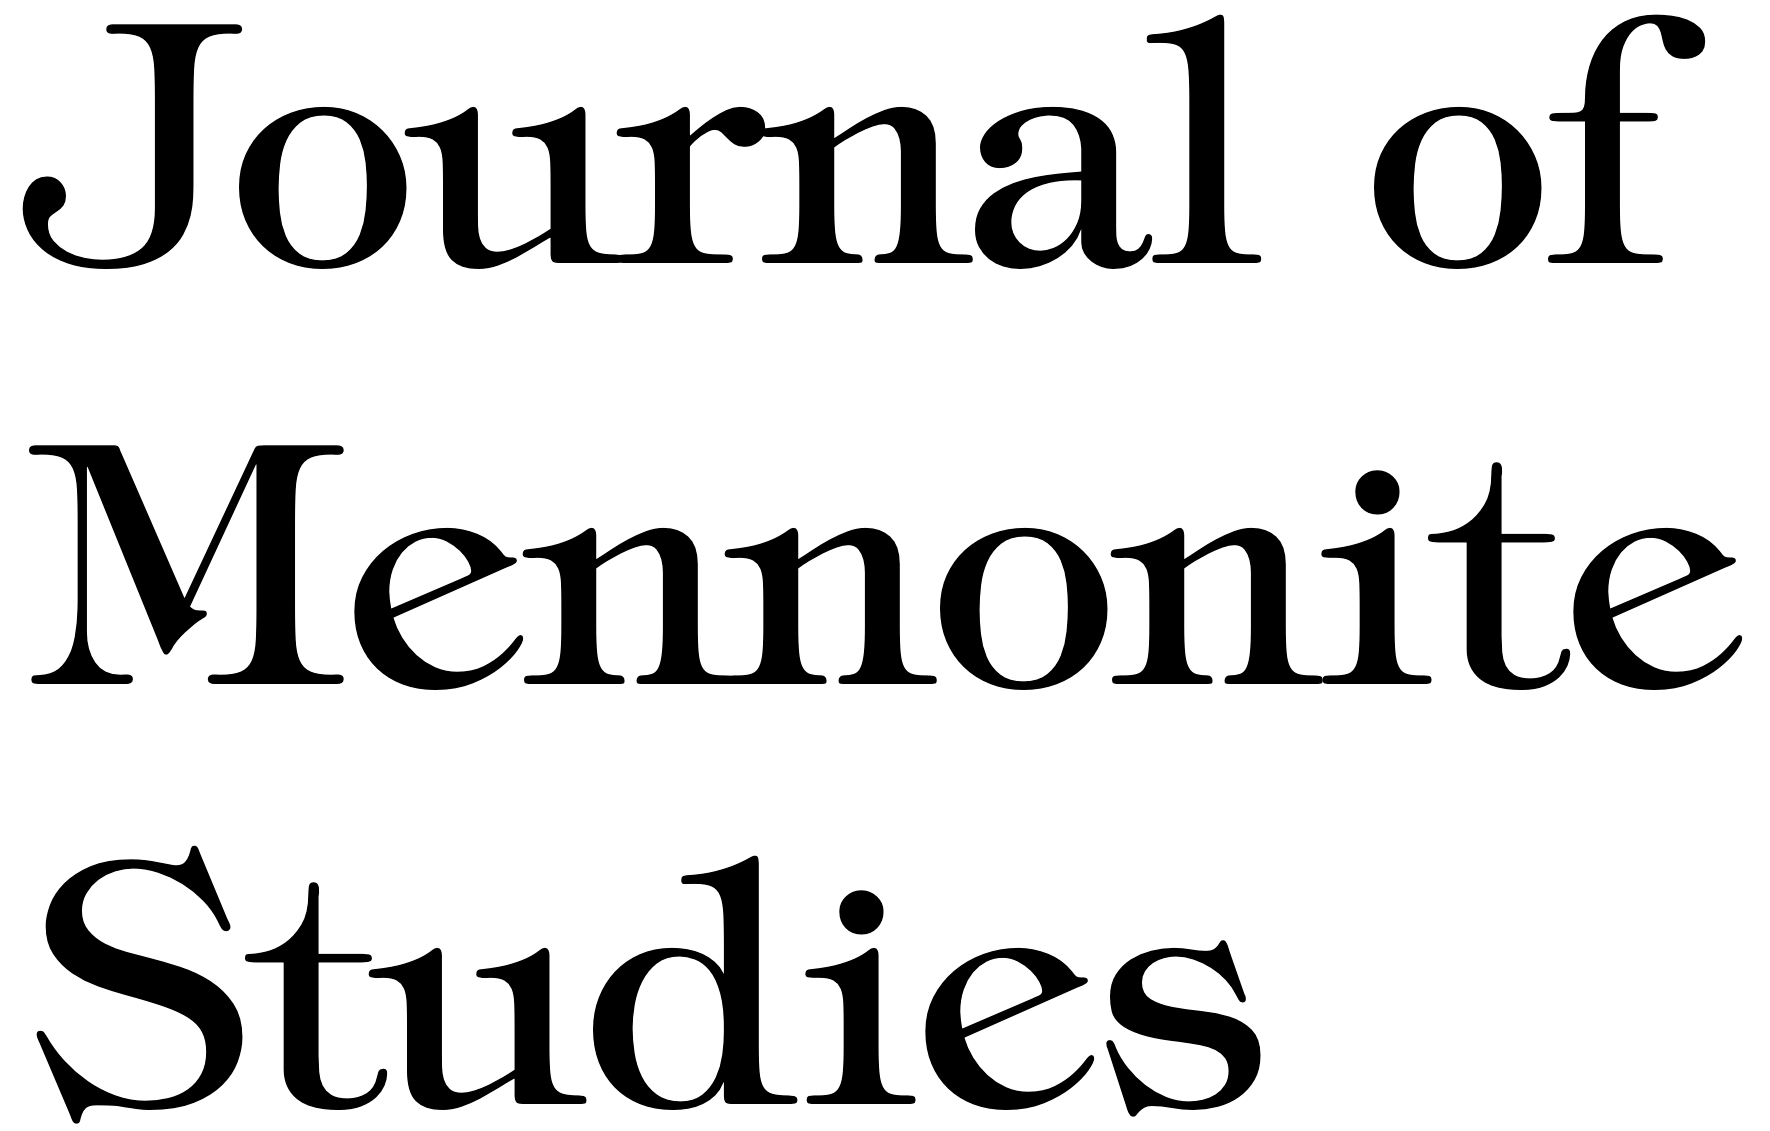 Journal of Mennonite Studies